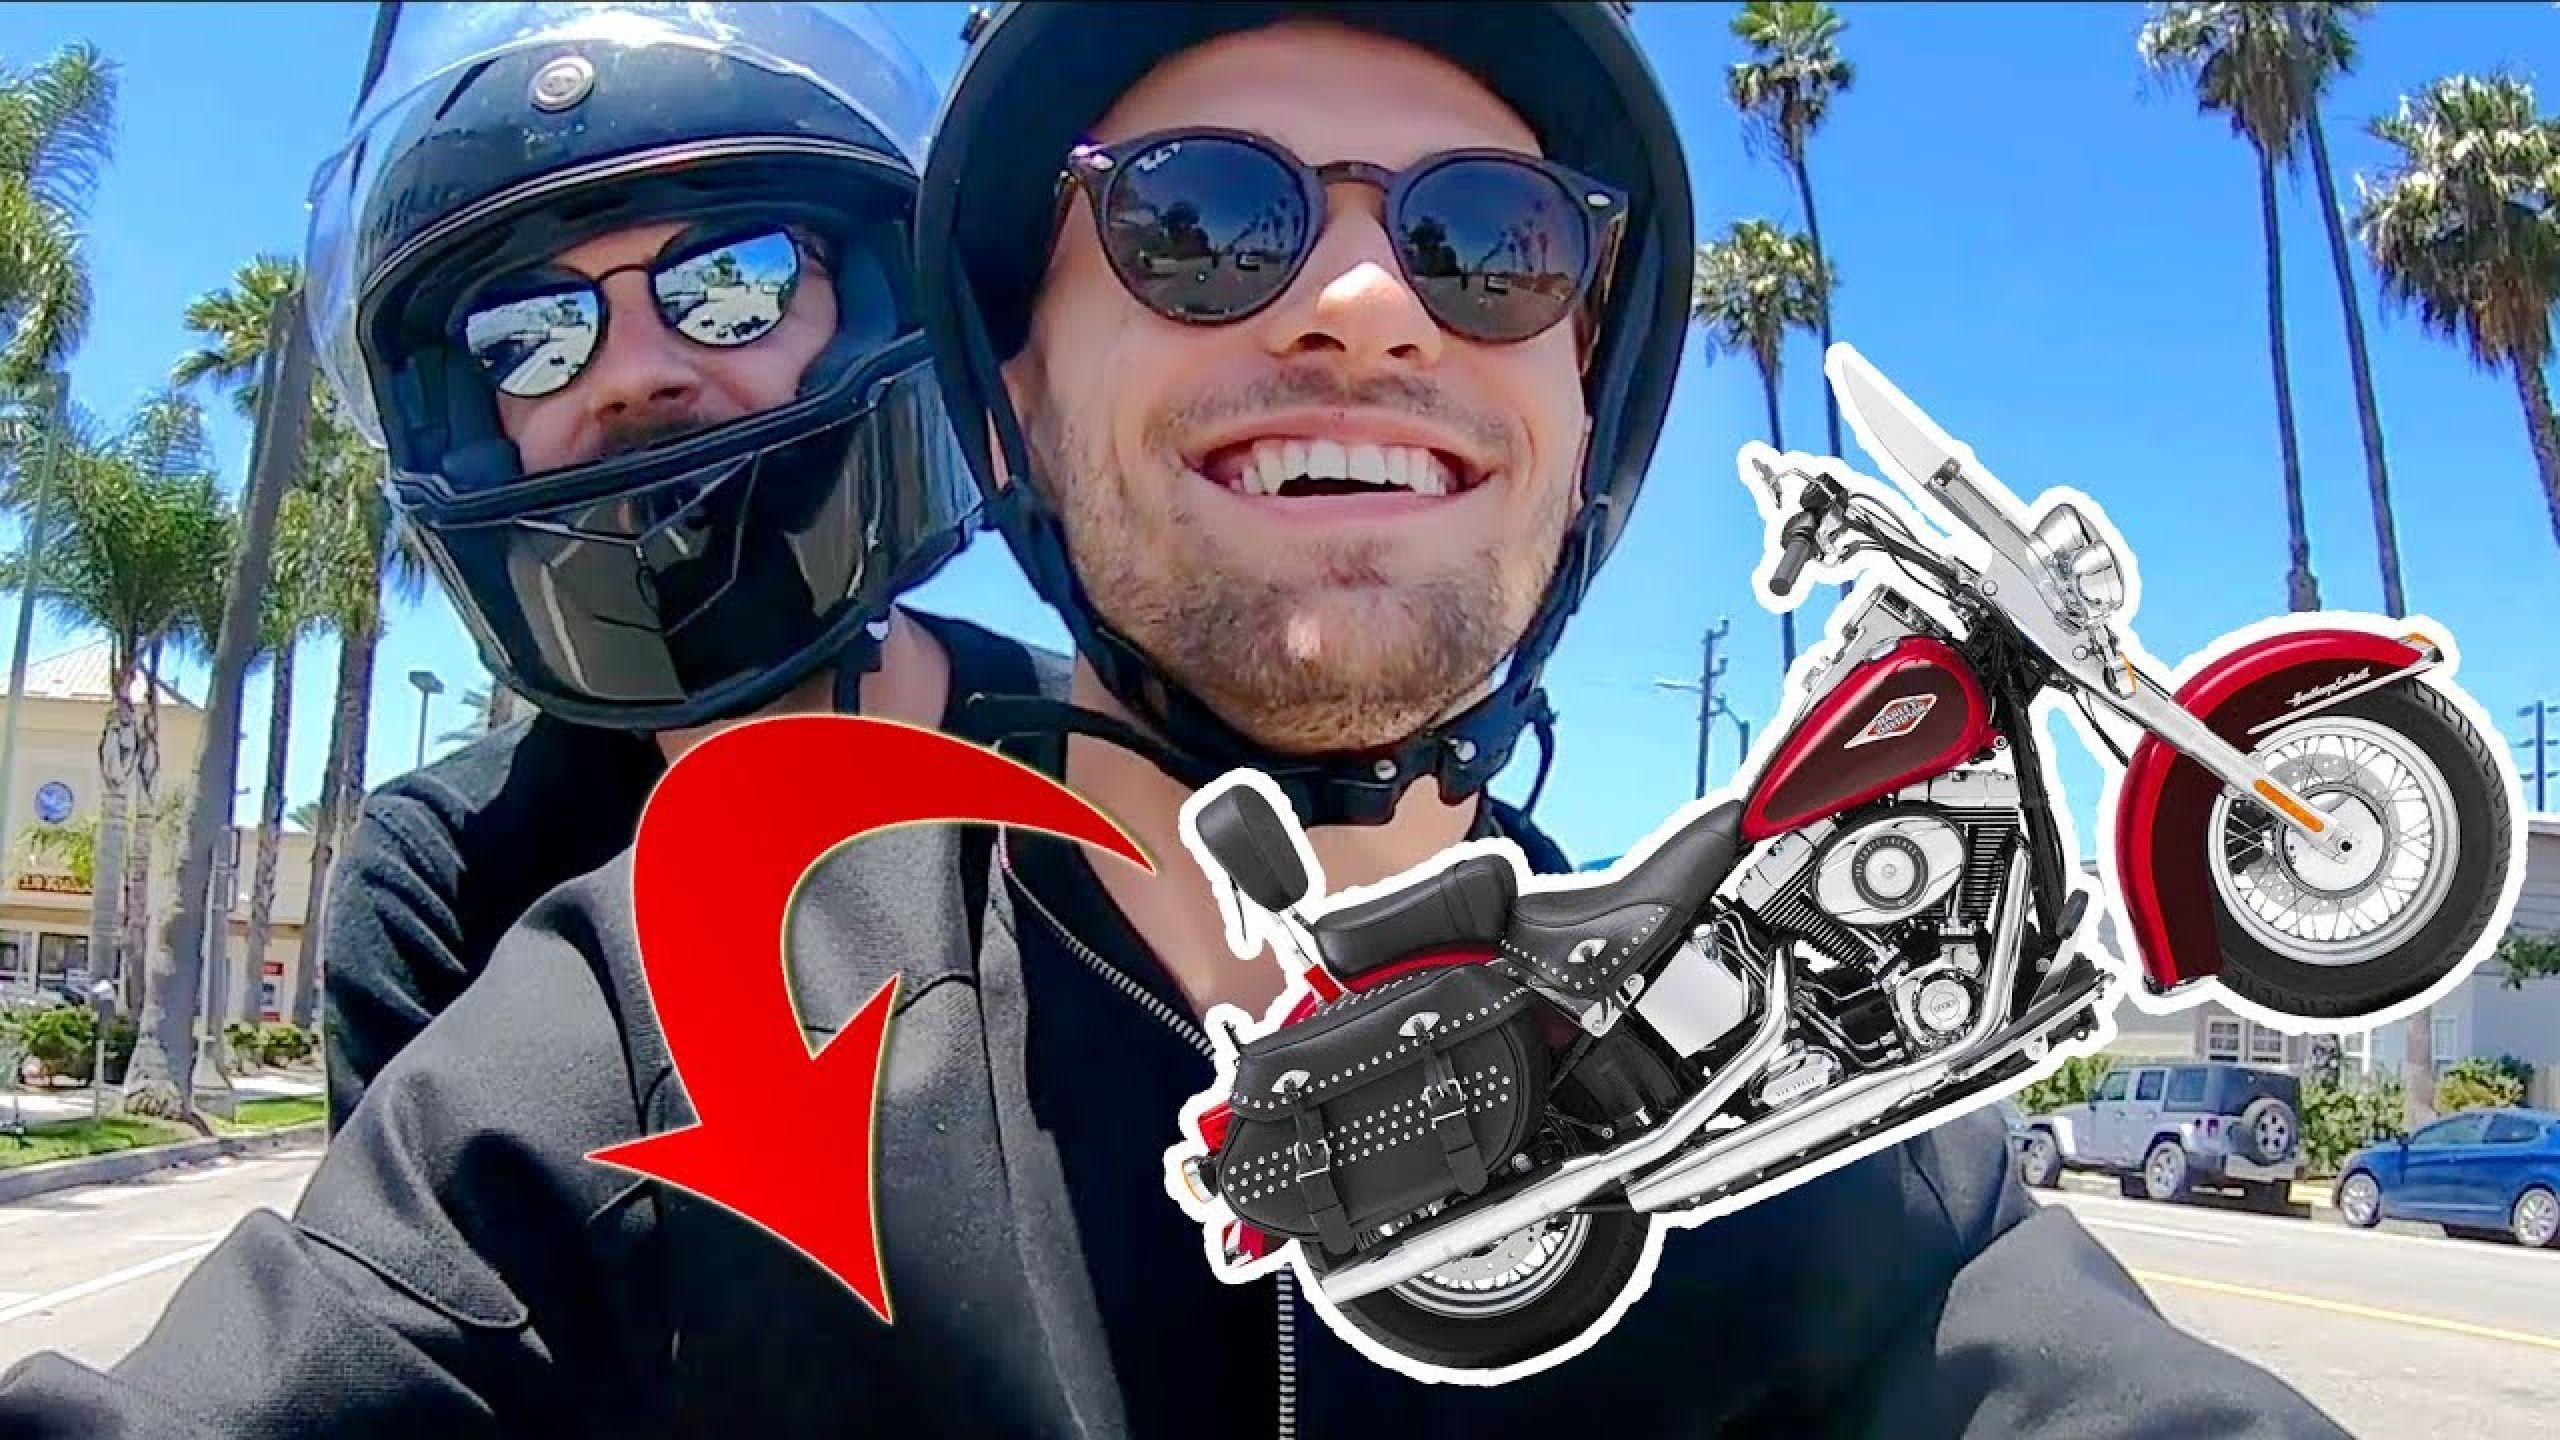 ON ROULE EN HARLEY DAVIDSON (Vlog Los Angeles 1)